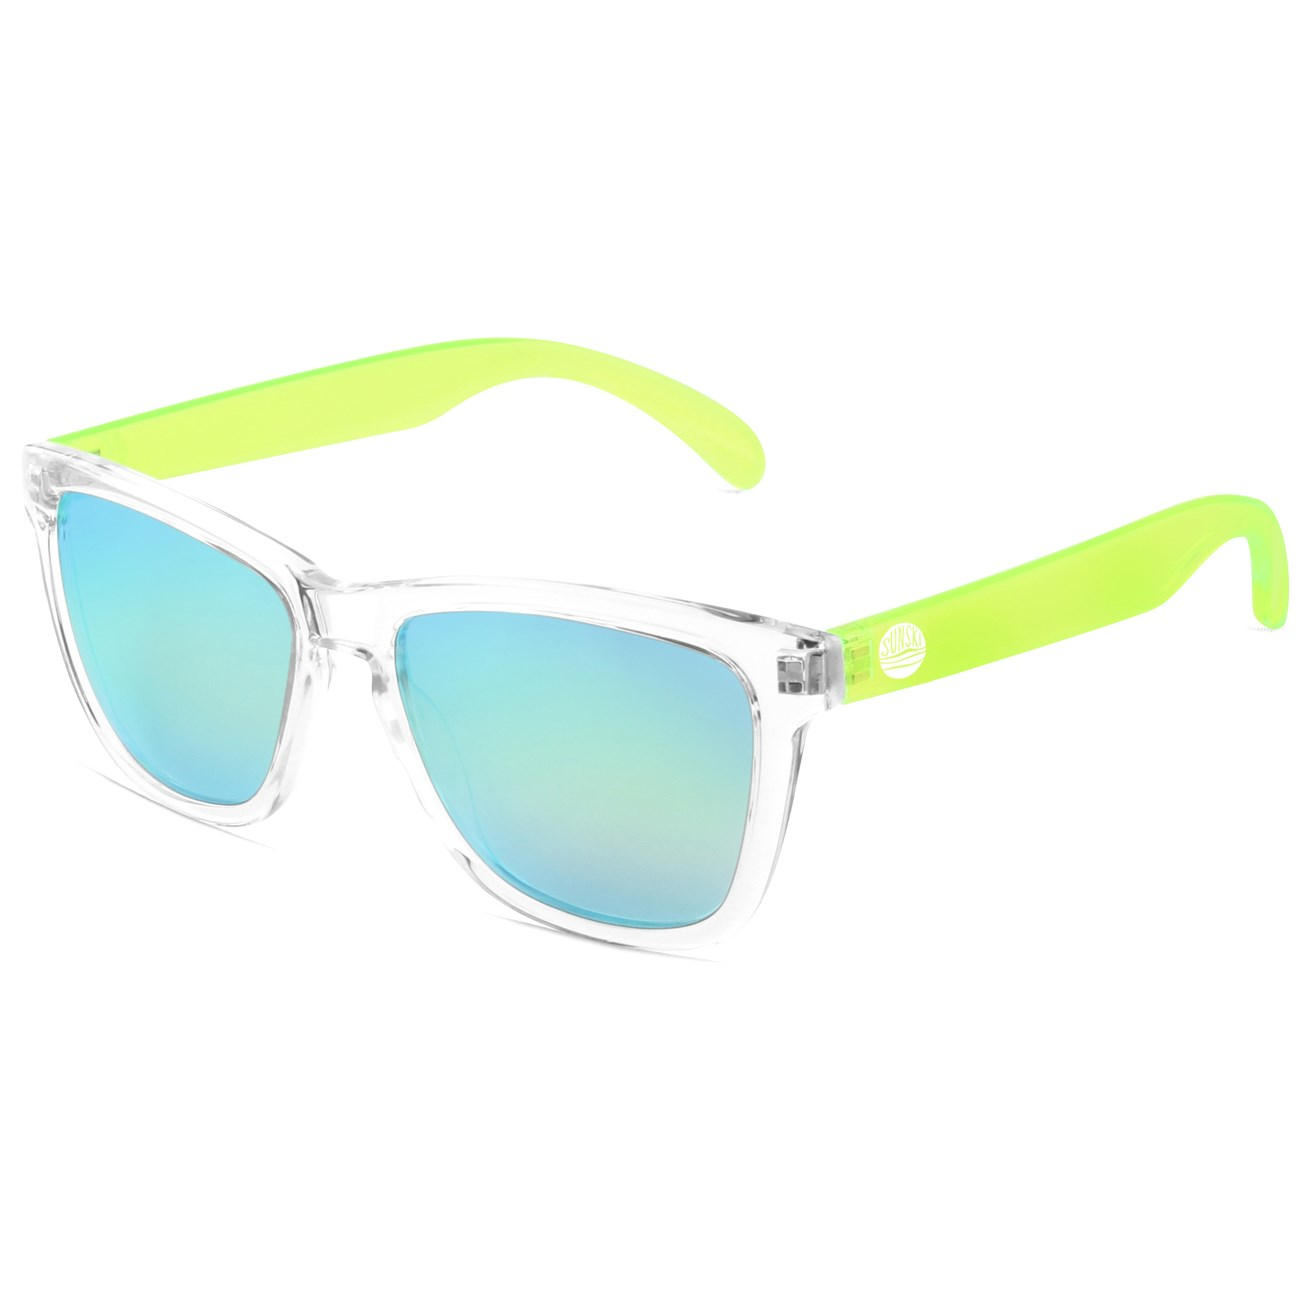 original sunglasses  Sunski Originals Sunglasses